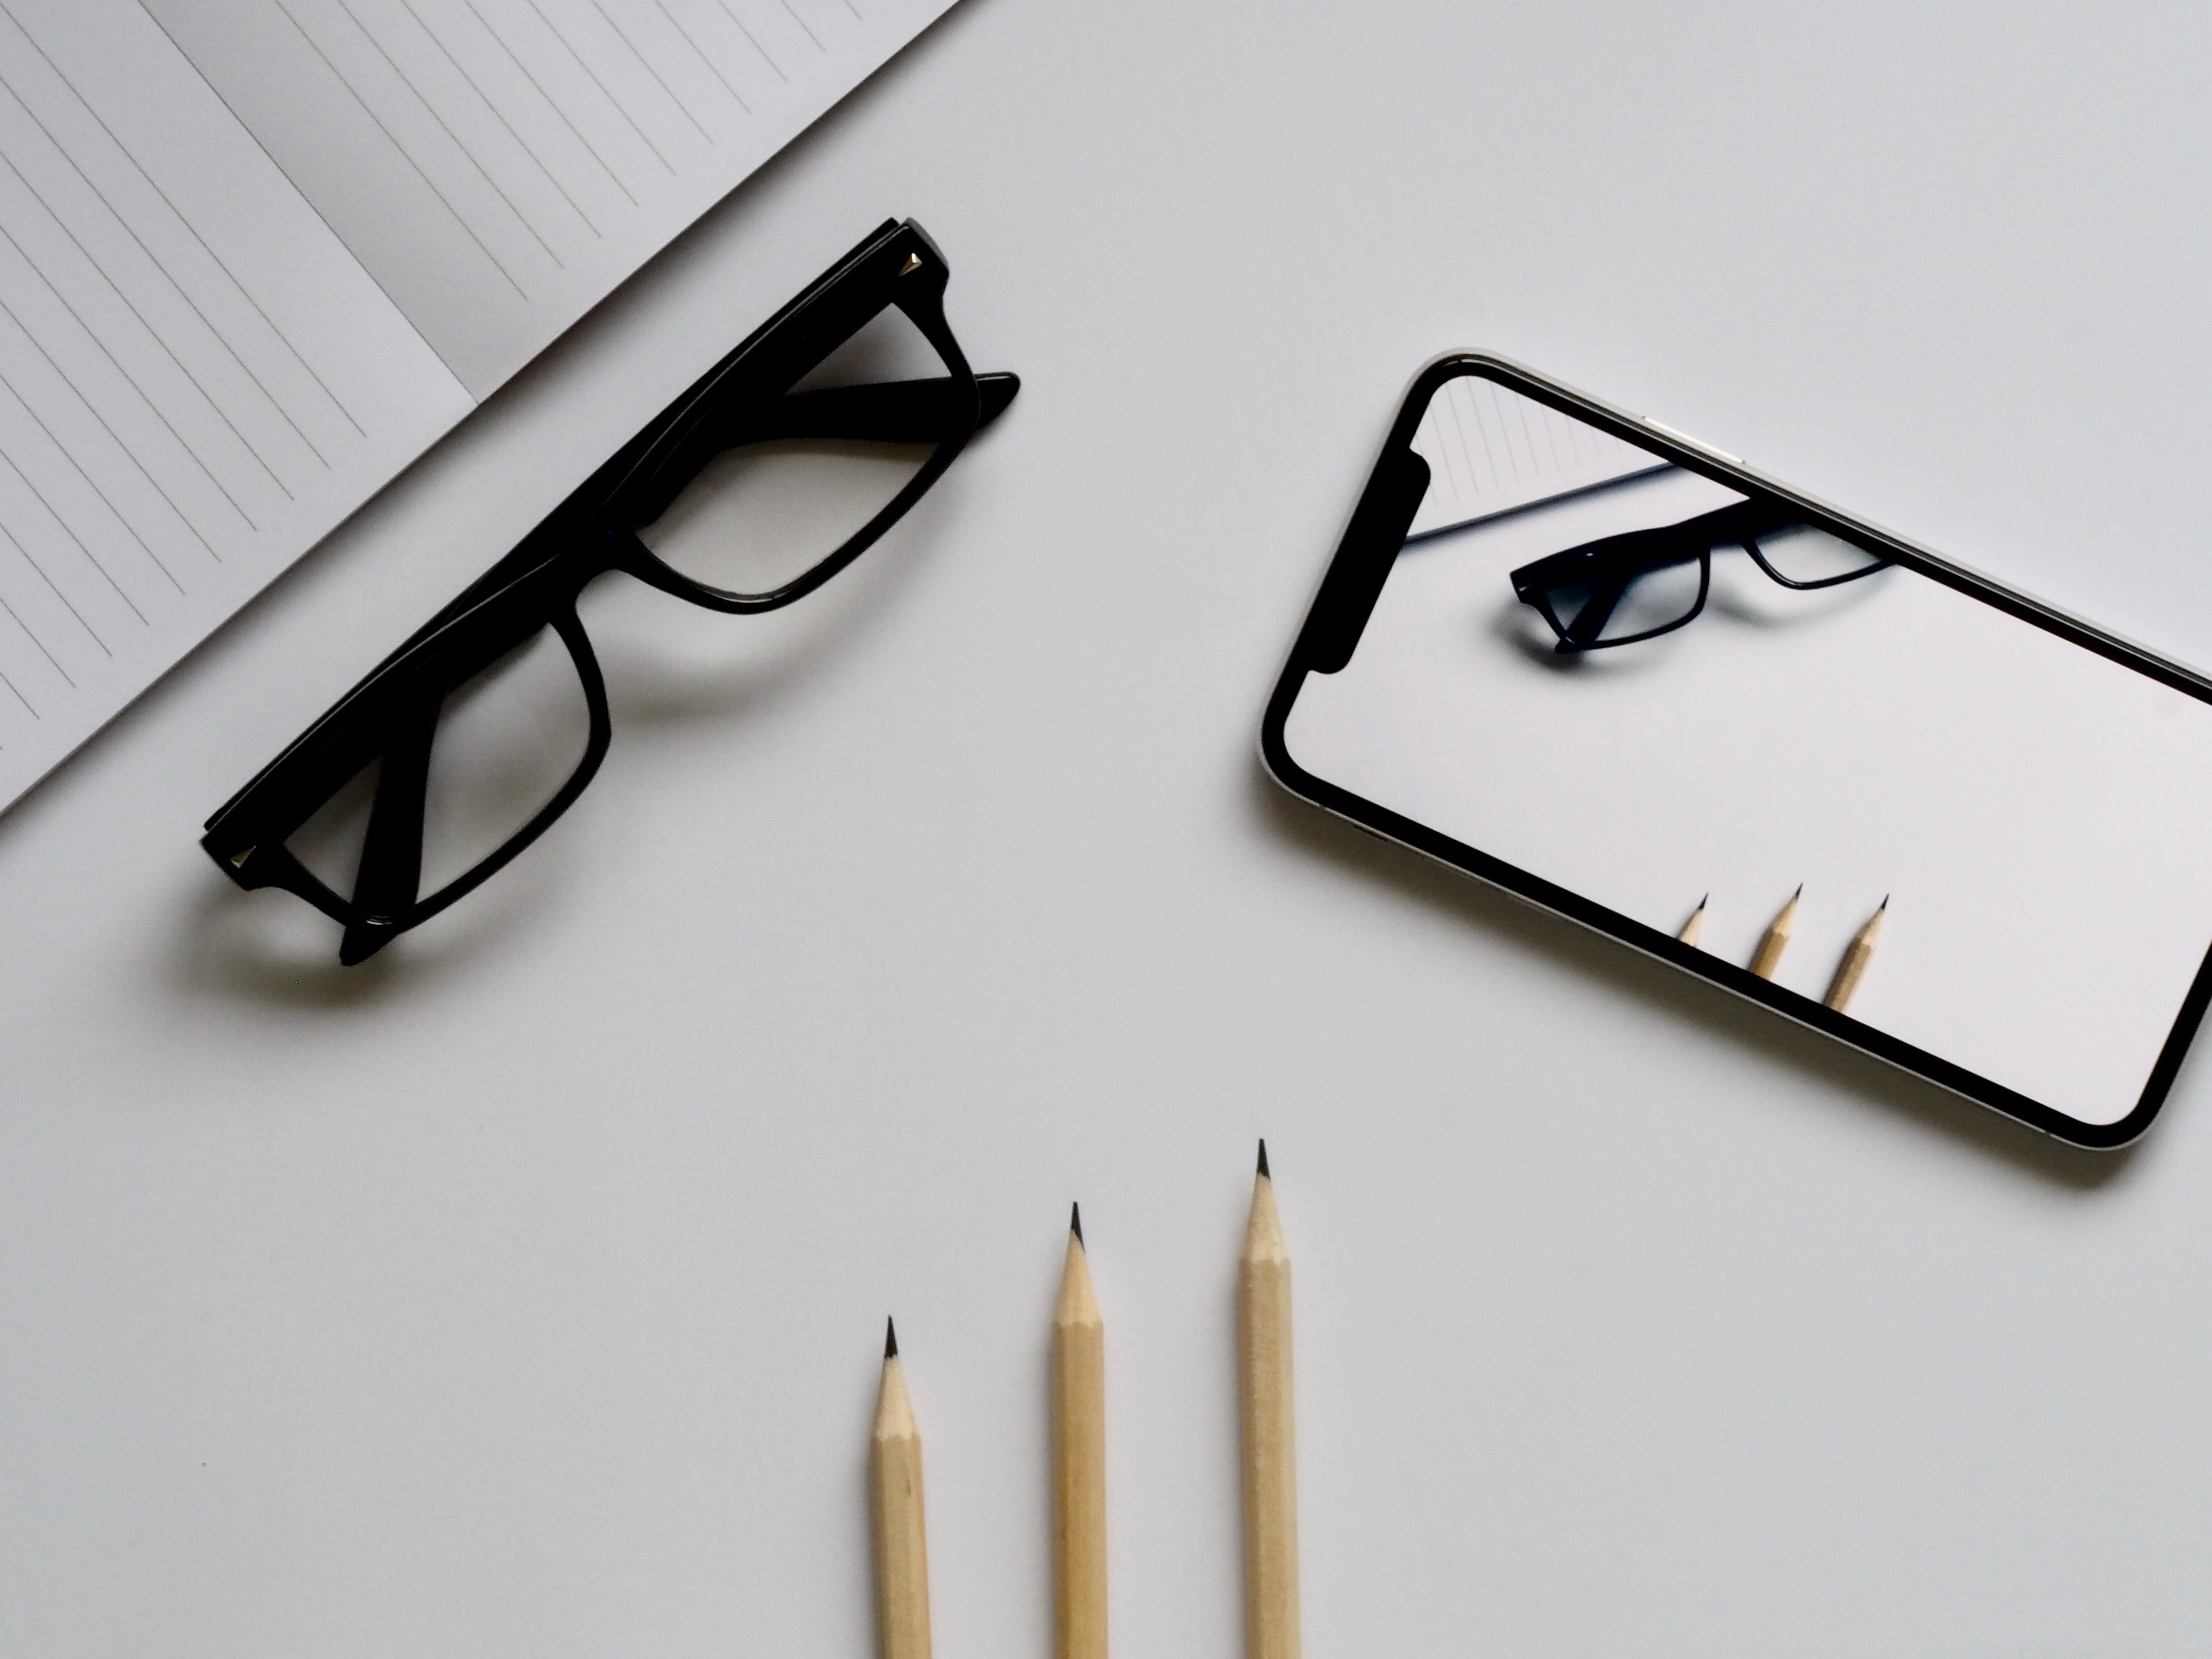 Three pencils, eyeglasses, and smartphone on white table photo